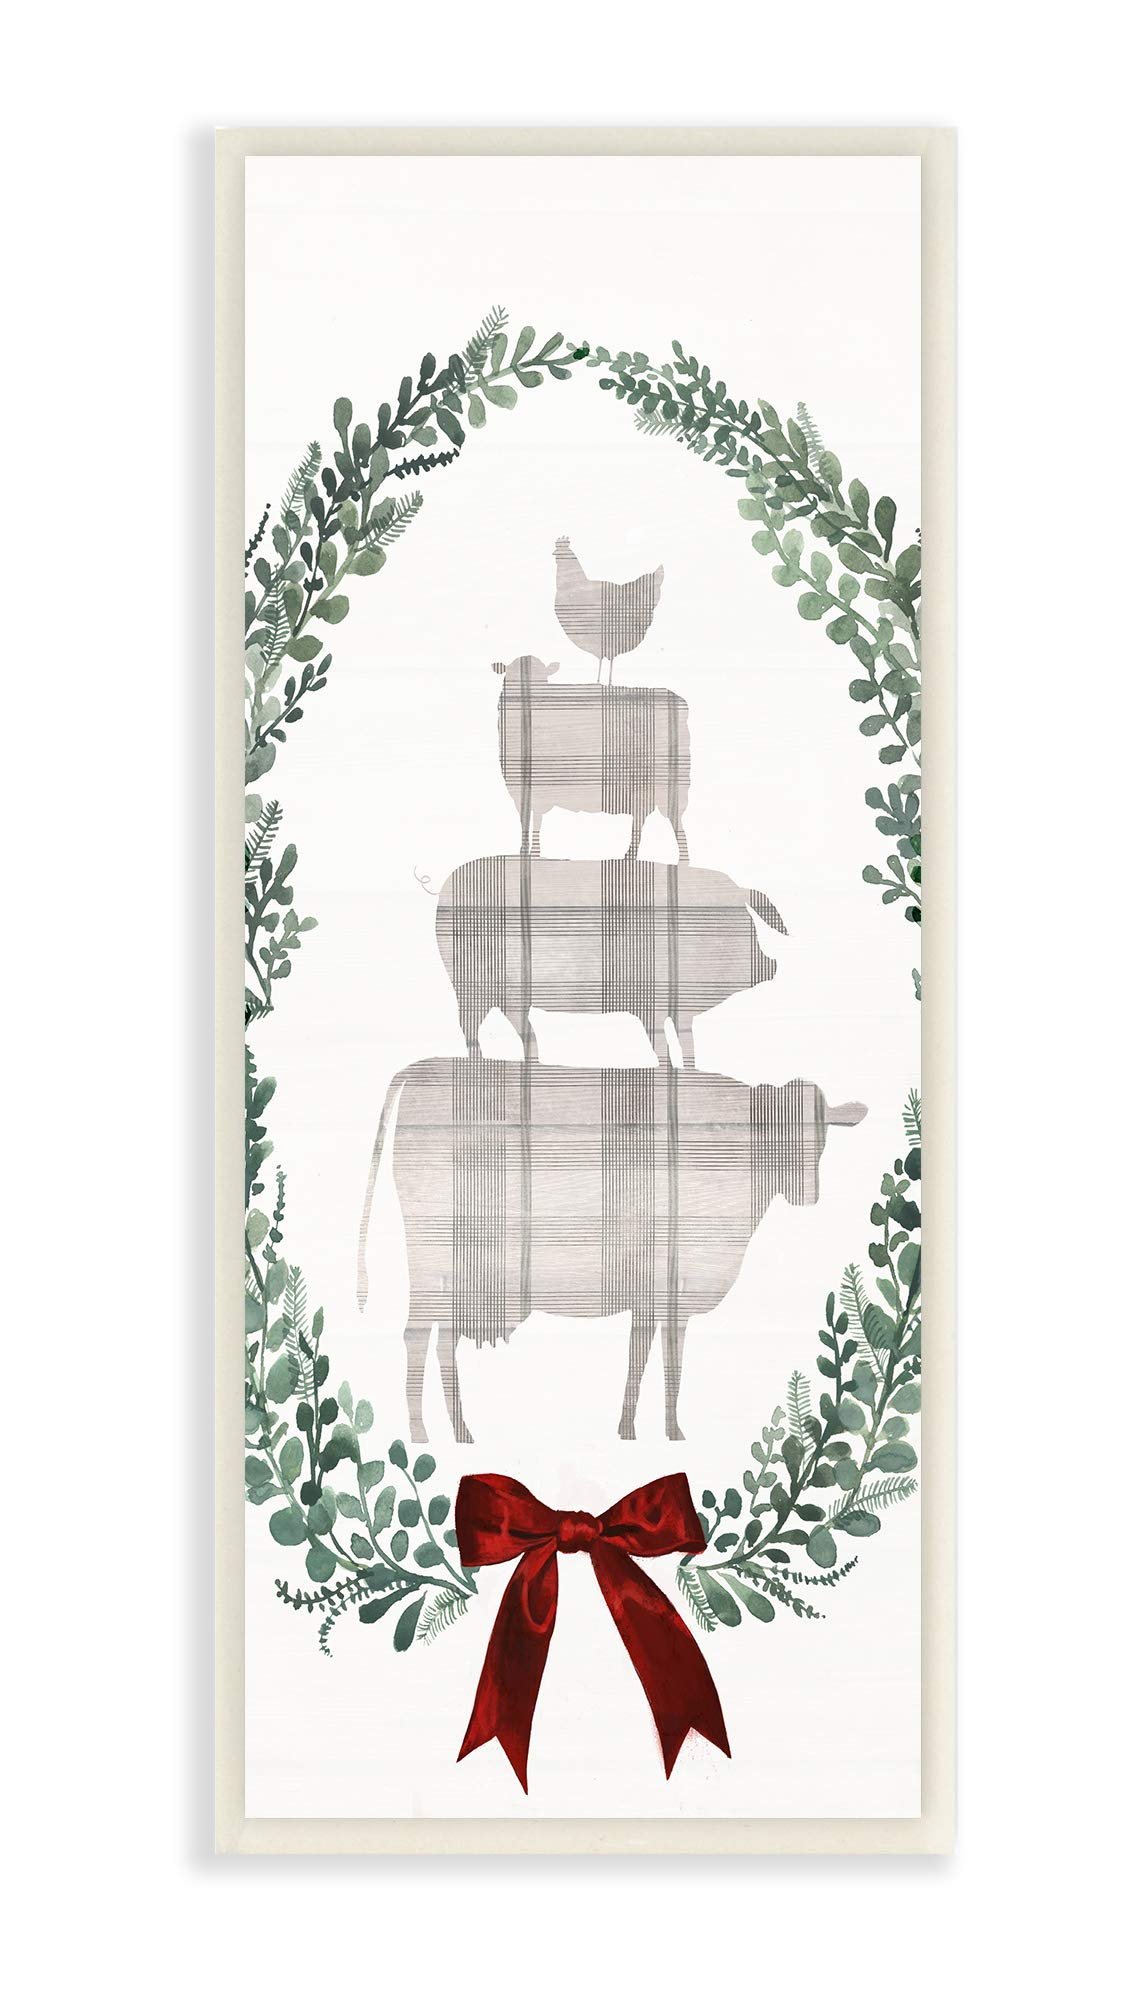 The Stupell Home Décor Collection Holiday Farmhouse Plaid Stacked Farm Animals in a Wreath Wall Plaque Art, 7 x 17, Multi-Color